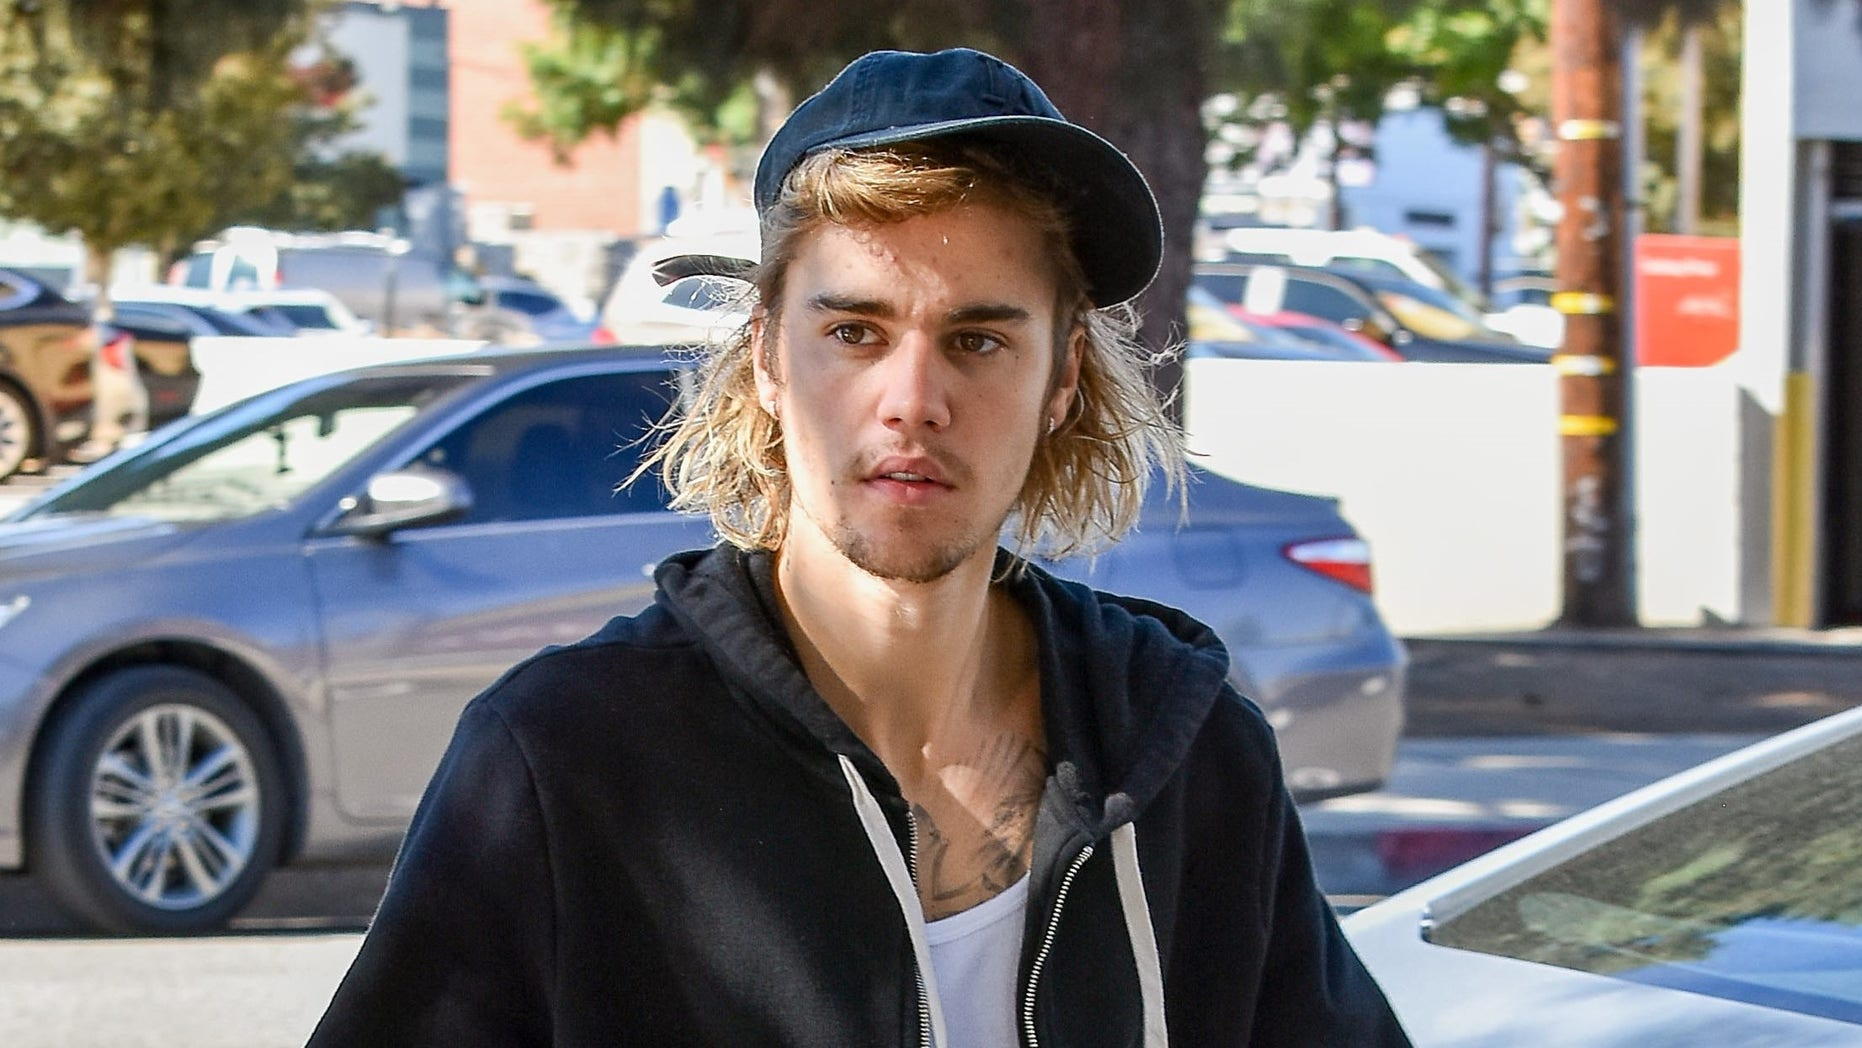 Justin Bieber's new face tattoo revealed | Fox News